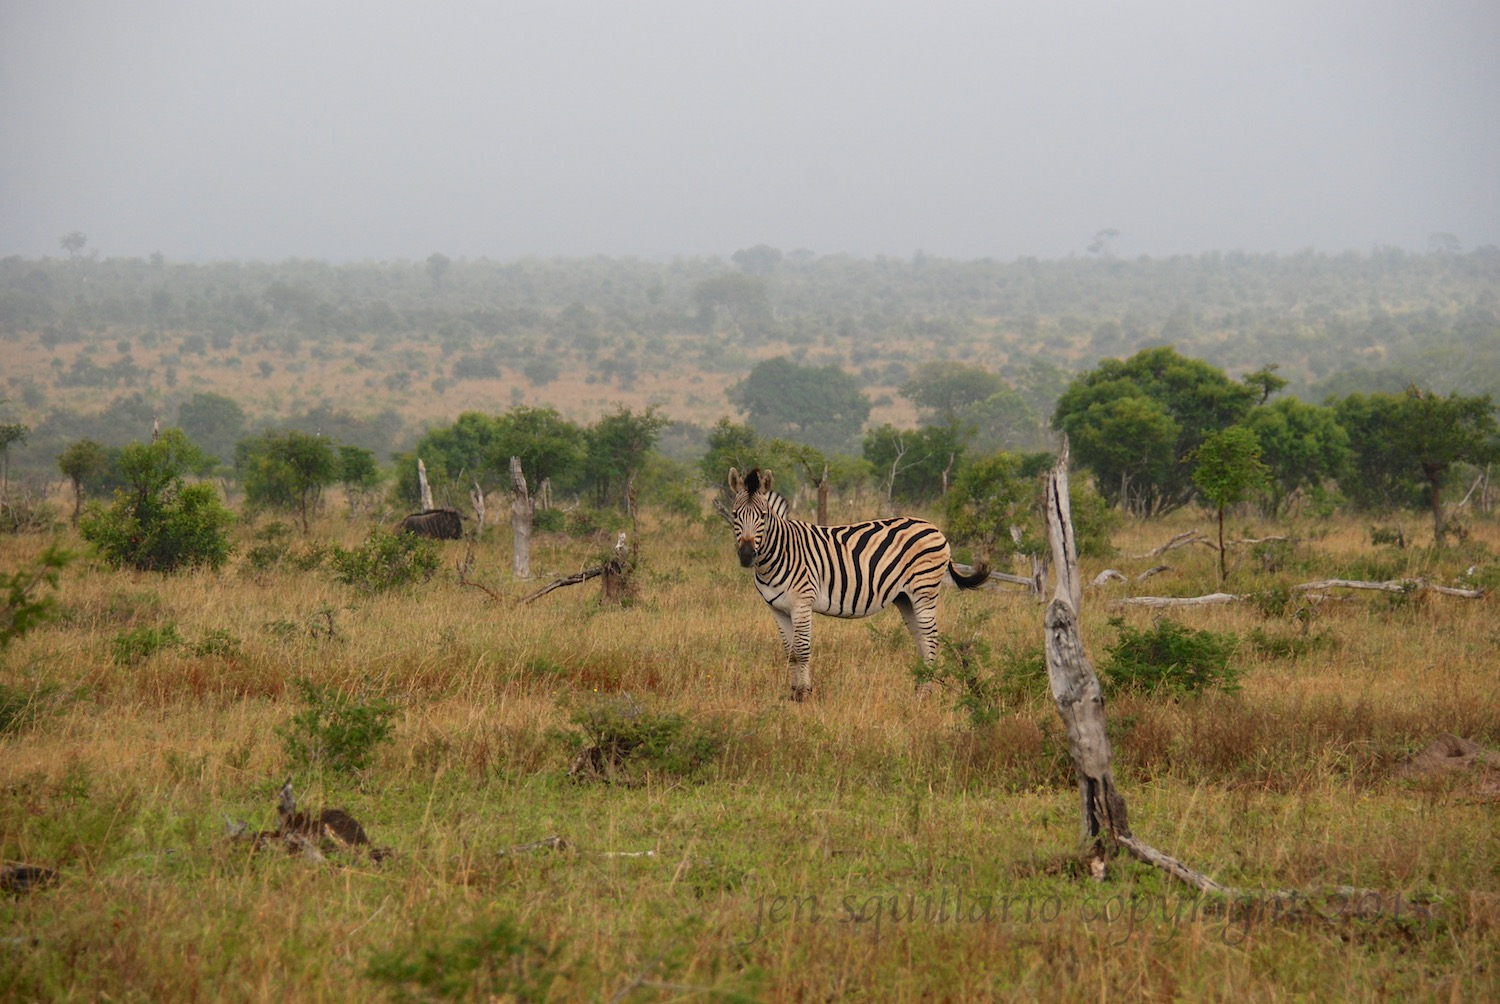 This photo, taken at Ngala Private Game Reserve, gives a fairly good idea (despite the fog) of the expanse of this reserve.